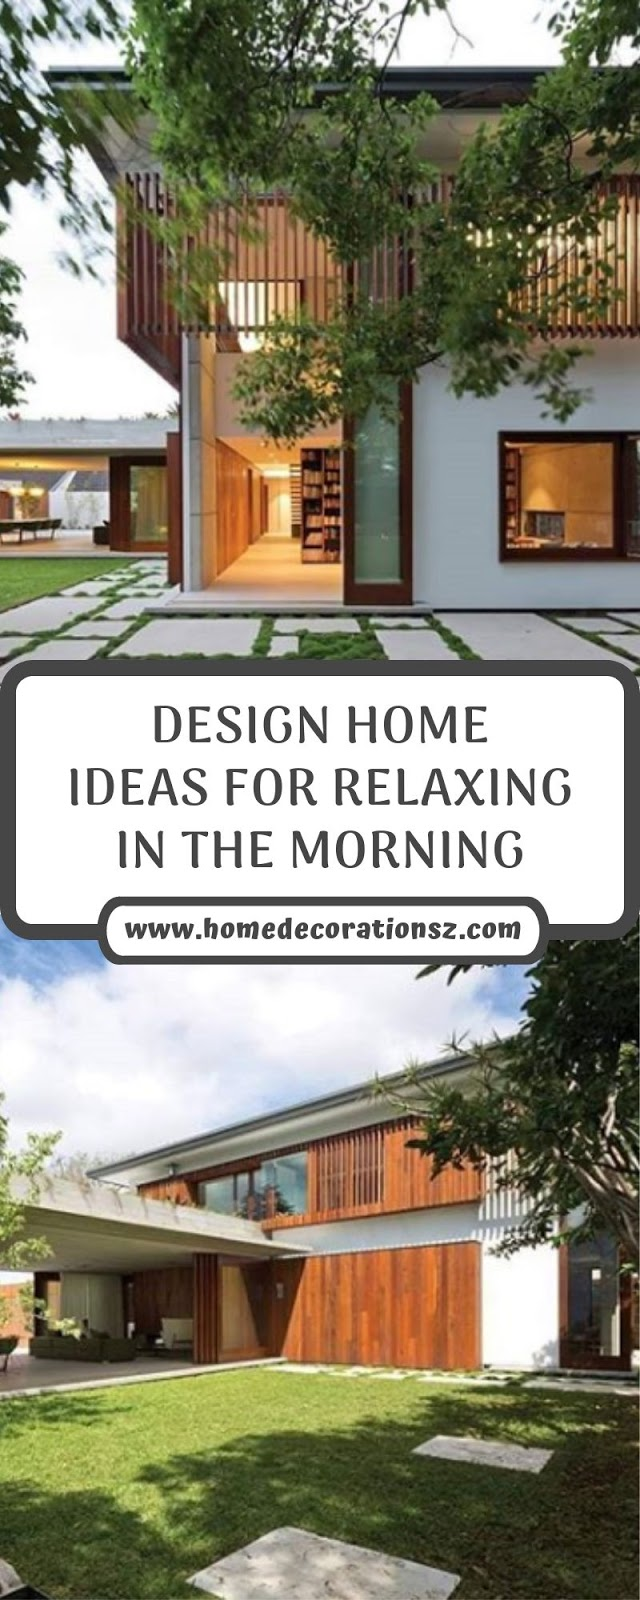 DESIGN HOME IDEAS FOR RELAXING IN THE MORNING